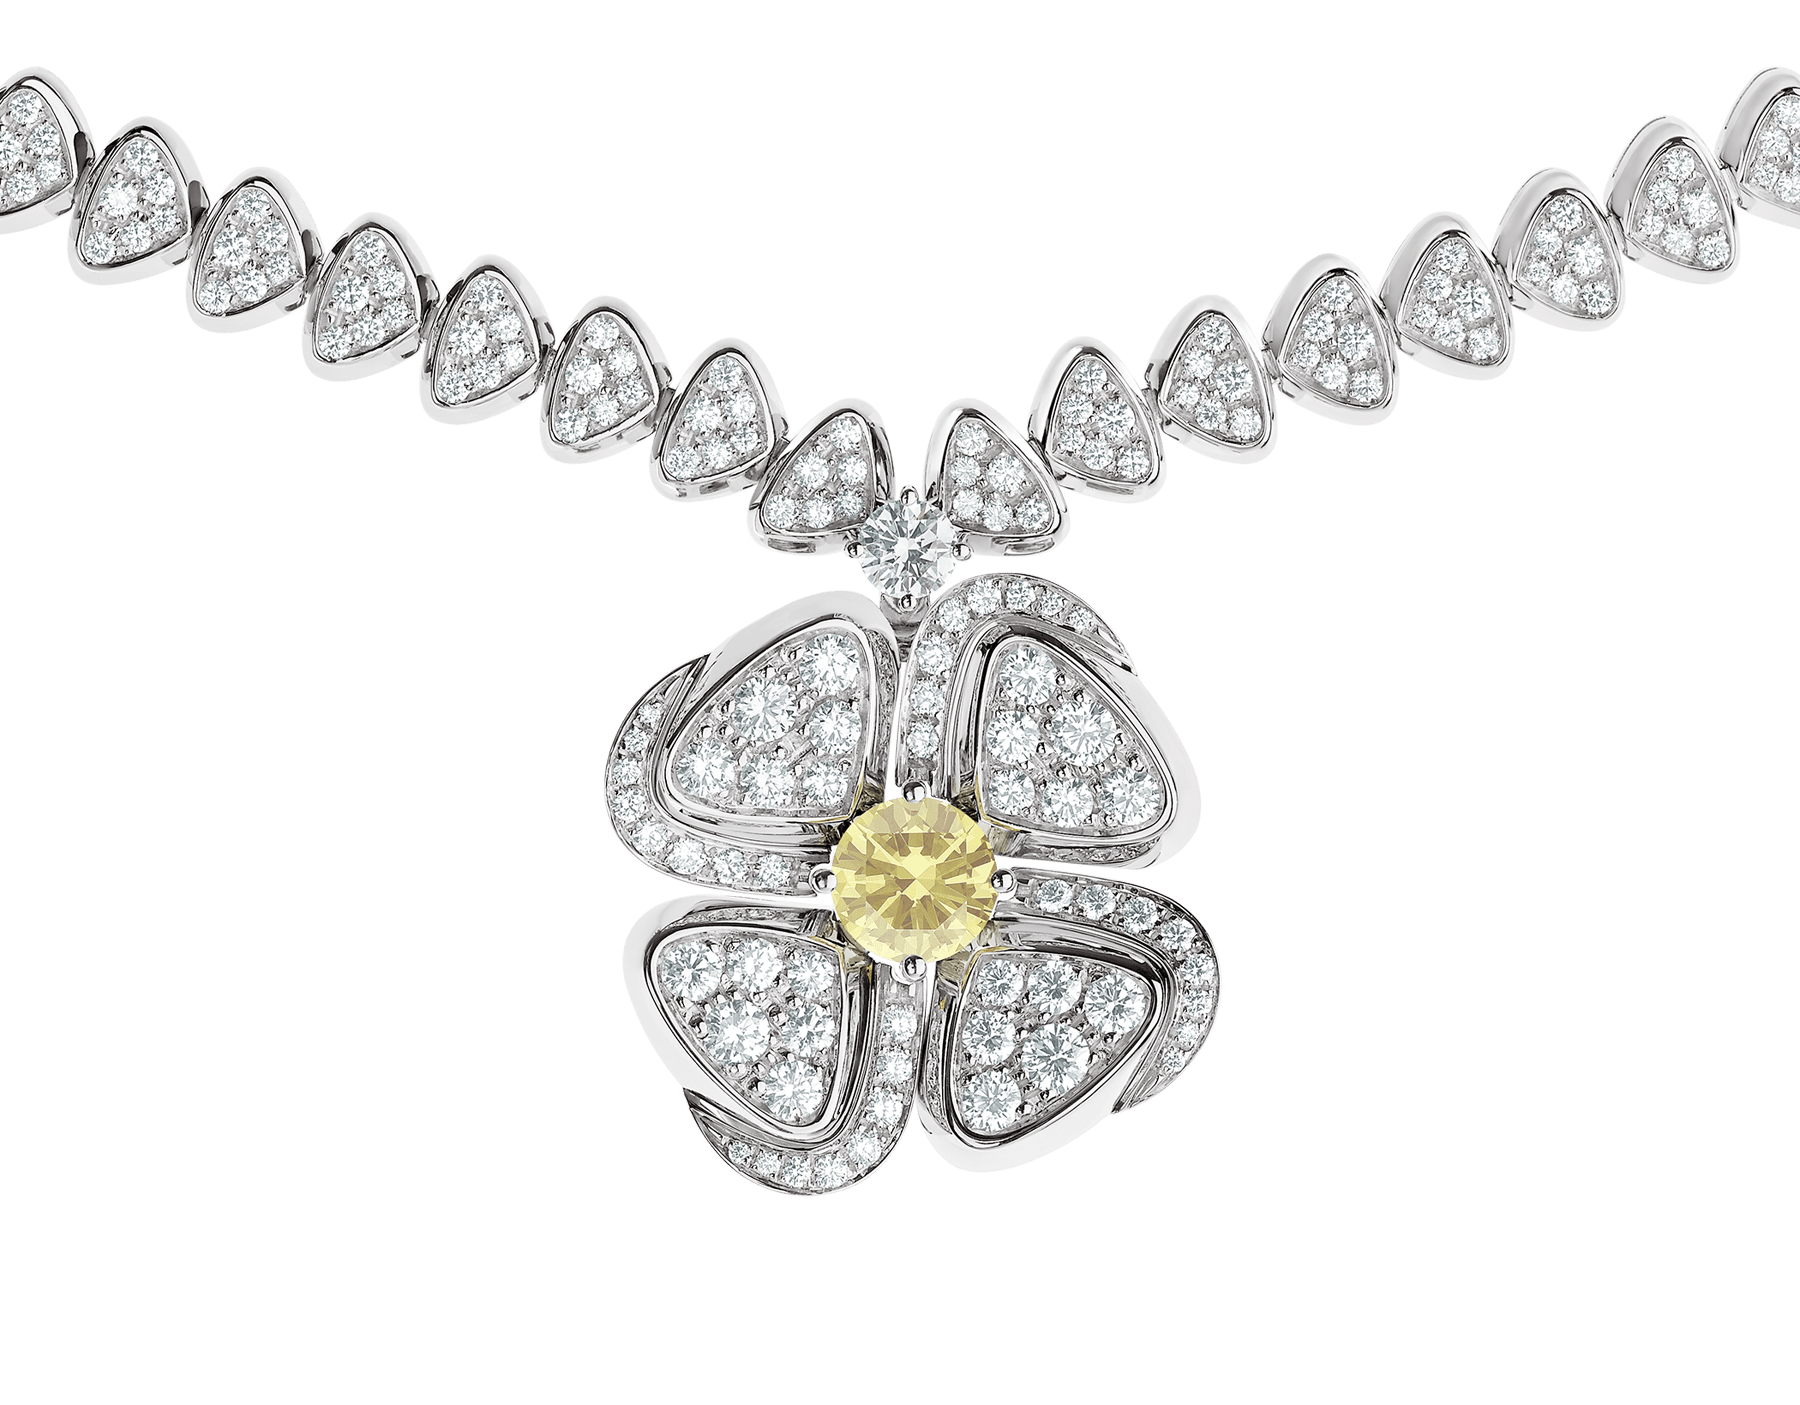 Fiorever 18 kt white gold necklace set with one central yellow diamond (0.50 ct) and pavé diamonds 357797 image 3